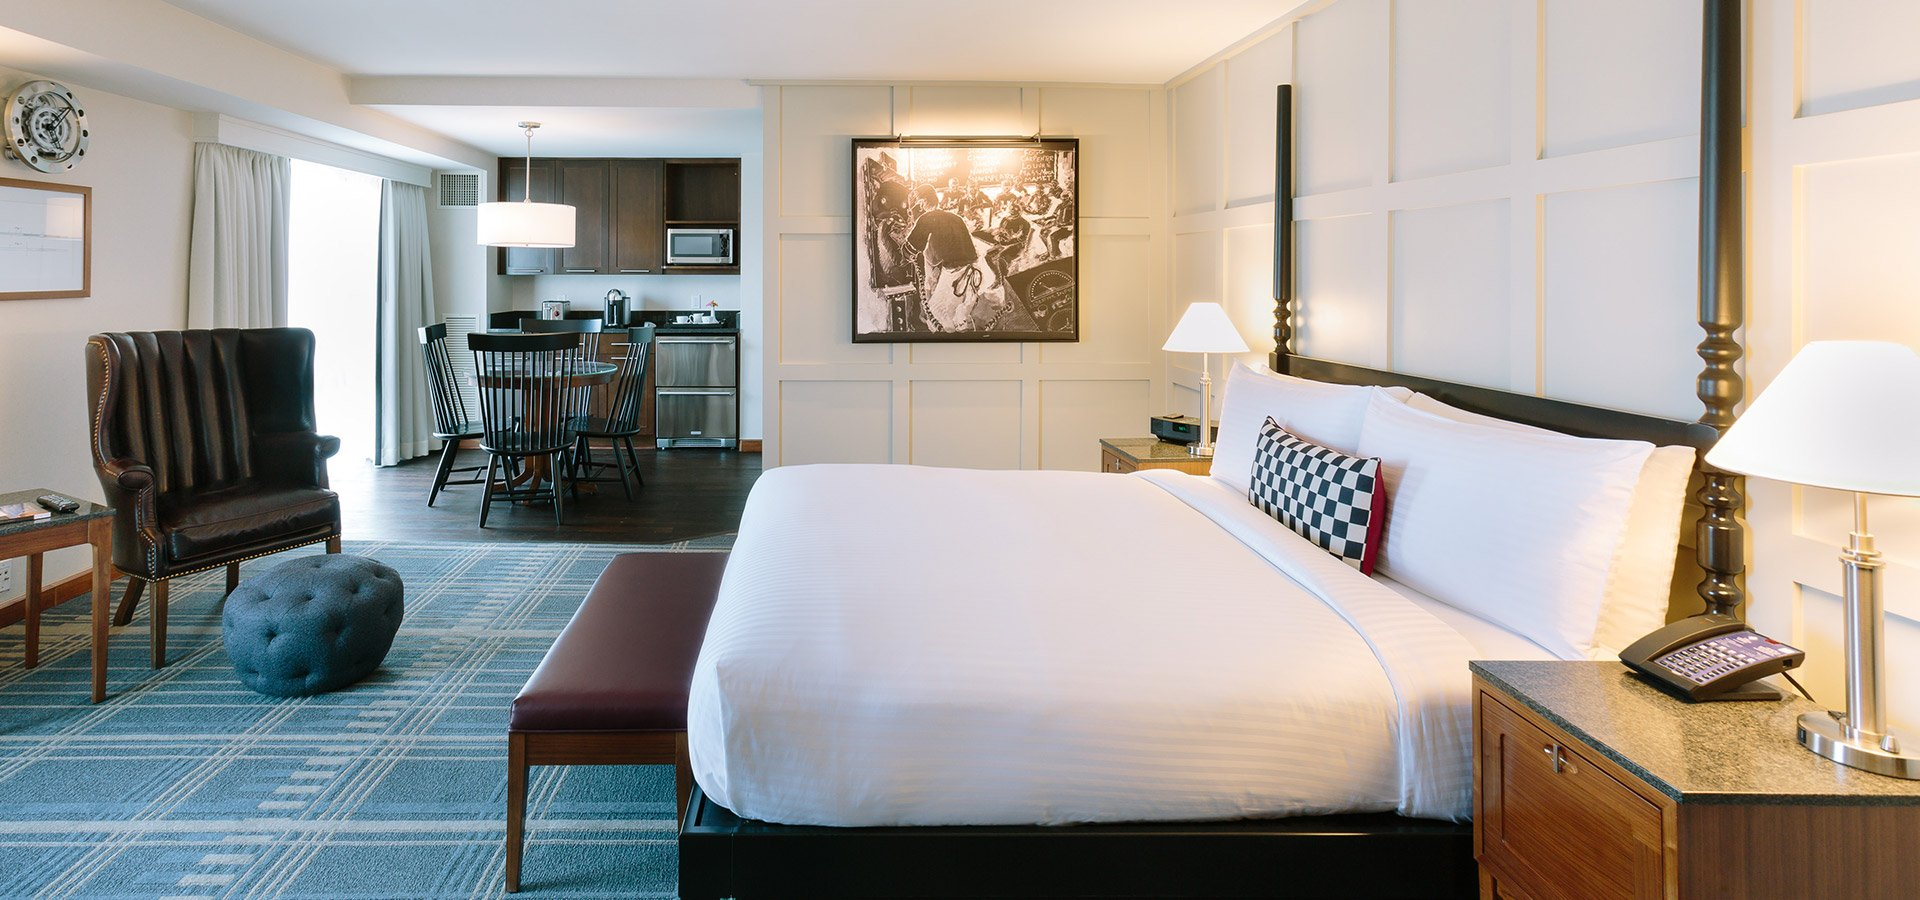 Cambridge Hotels Ma The Charles Hotel Rooms Suites Near Boston